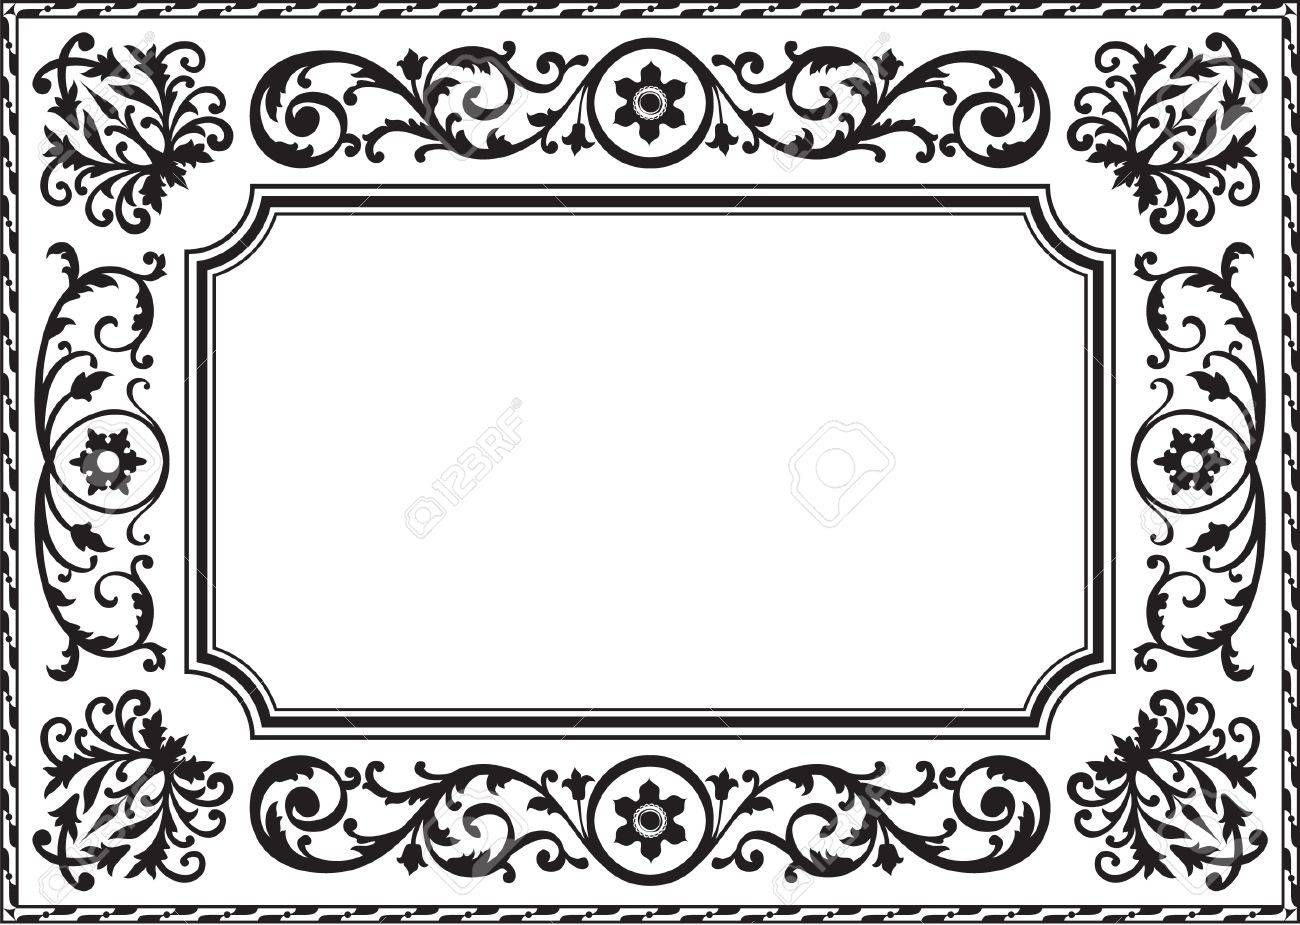 Baroque Frame Black And White Stock Photo, Picture And Royalty Free ...